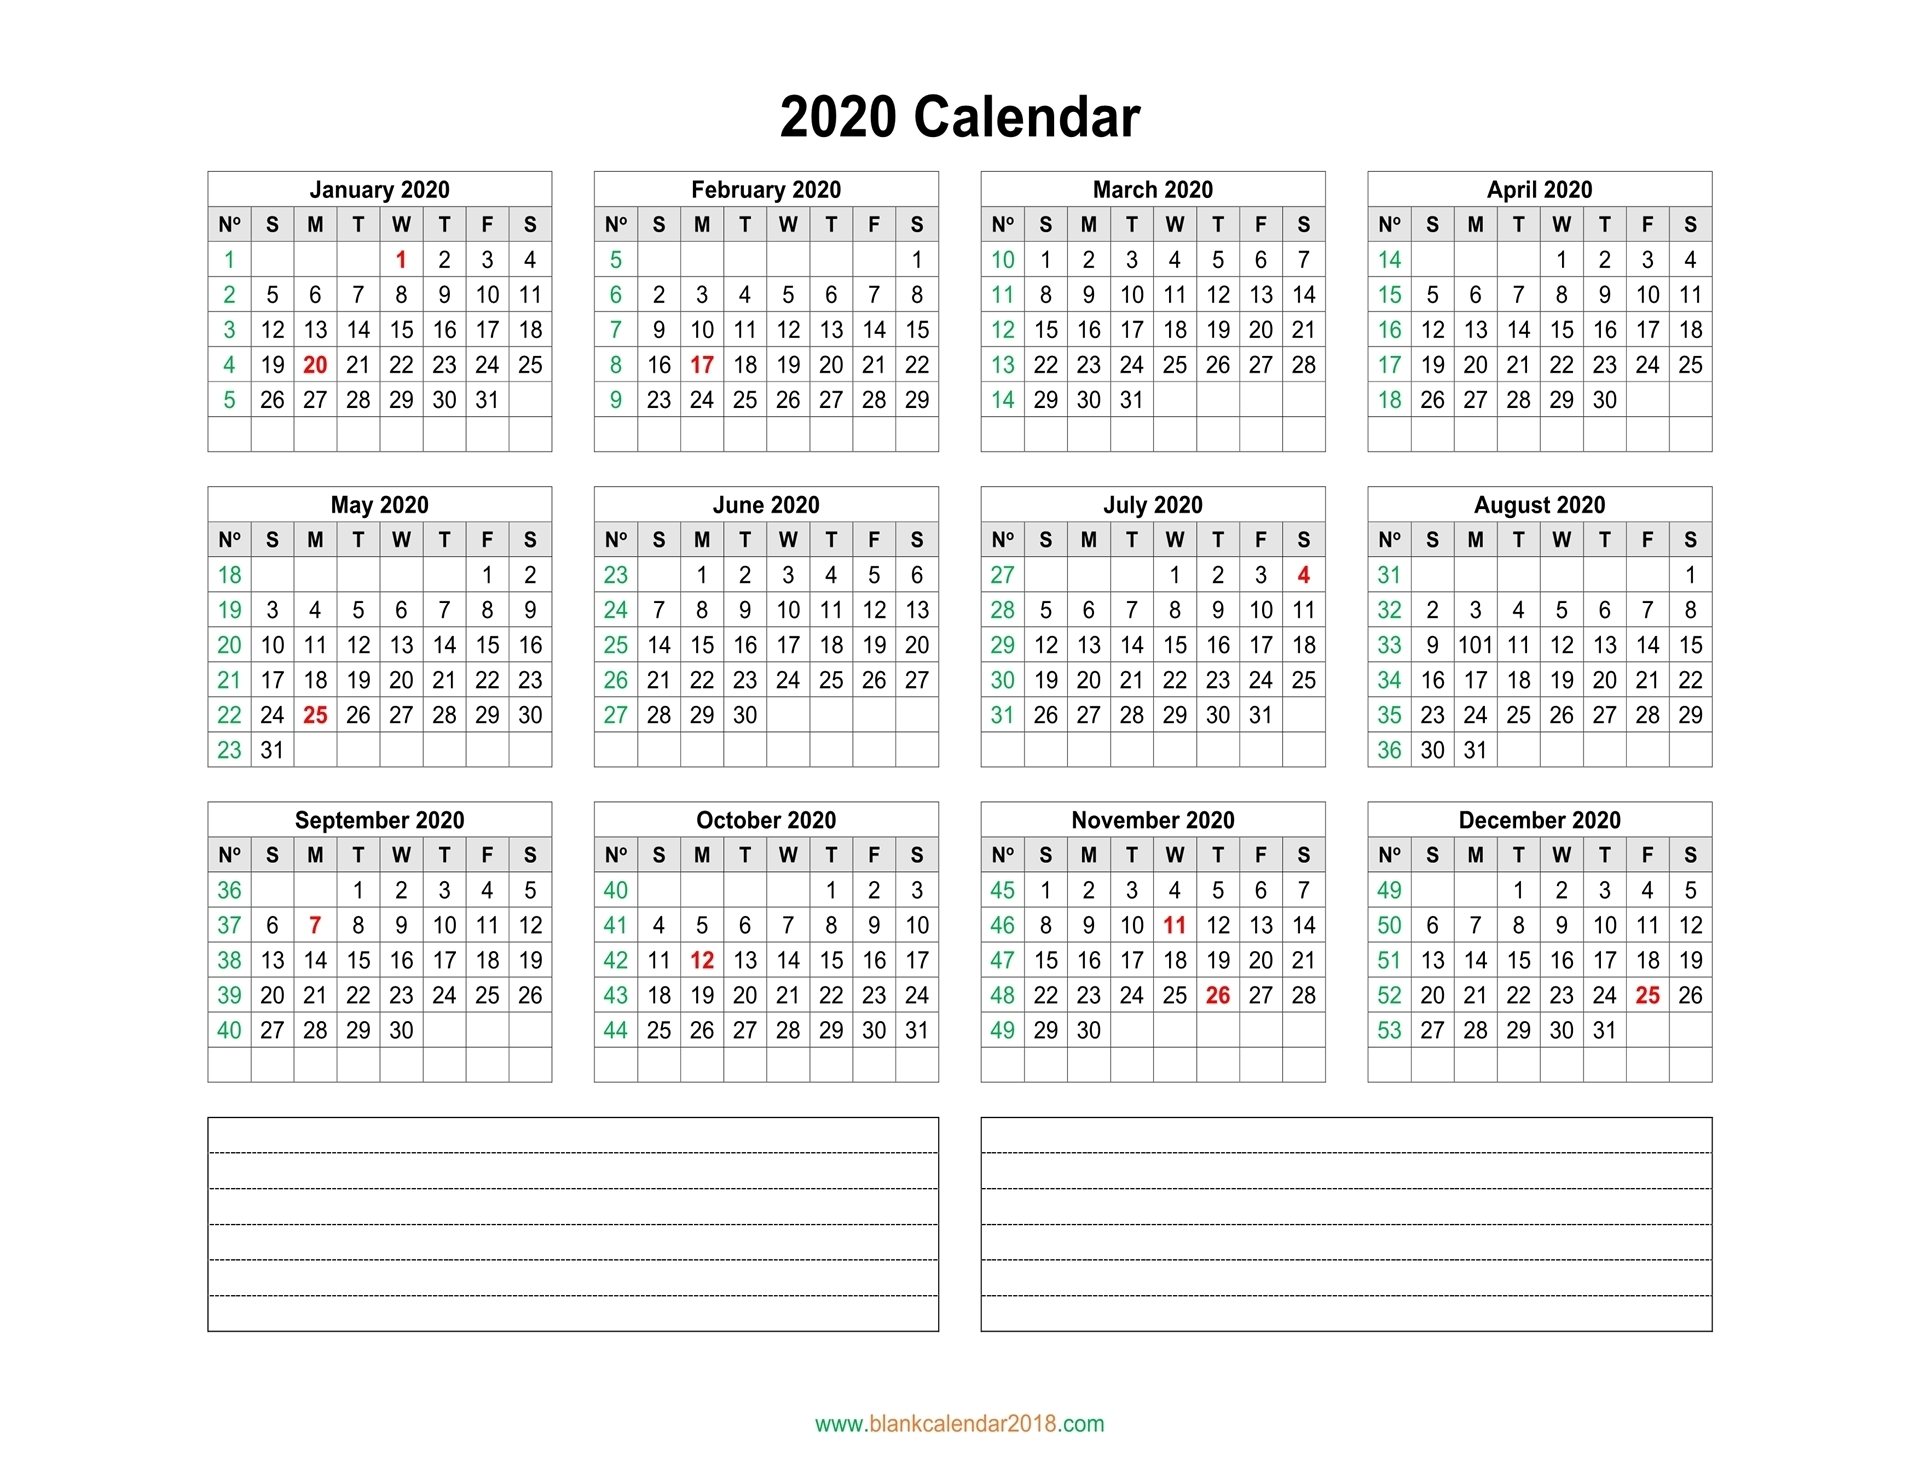 Blank Calendar 2020 for Printable Fillable 2020 Calandars Monthly At A Glance